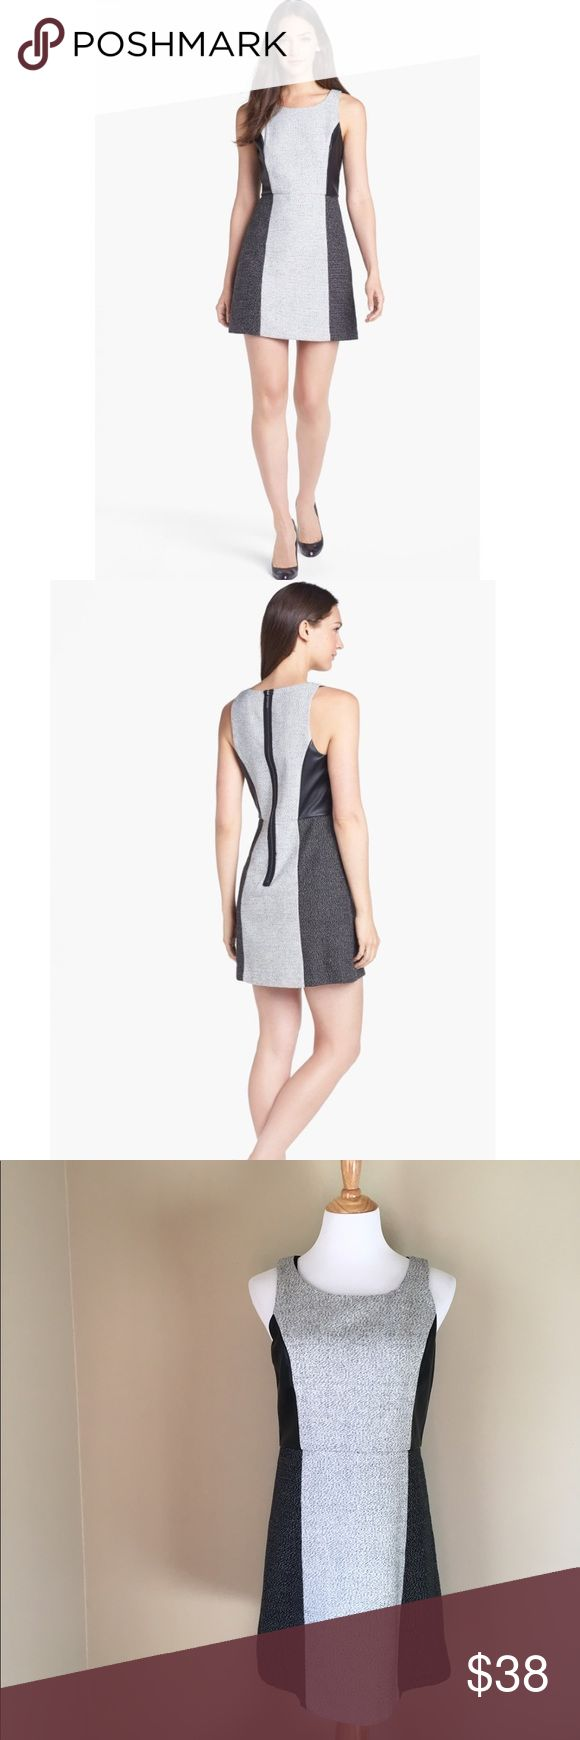 Kensie Colorblock Faux Leather Inset Tweed dress Modern faux leather enhances the color-blocked style of a tweed dress designed with figure-flattering seaming. A bold exposed zipper in back completes the contemporary look. Exposed back zip closure. Lined. Polyester/acrylic/rayon/nylon/wool; polyurethane; machine wash. Kensie Dresses Midi